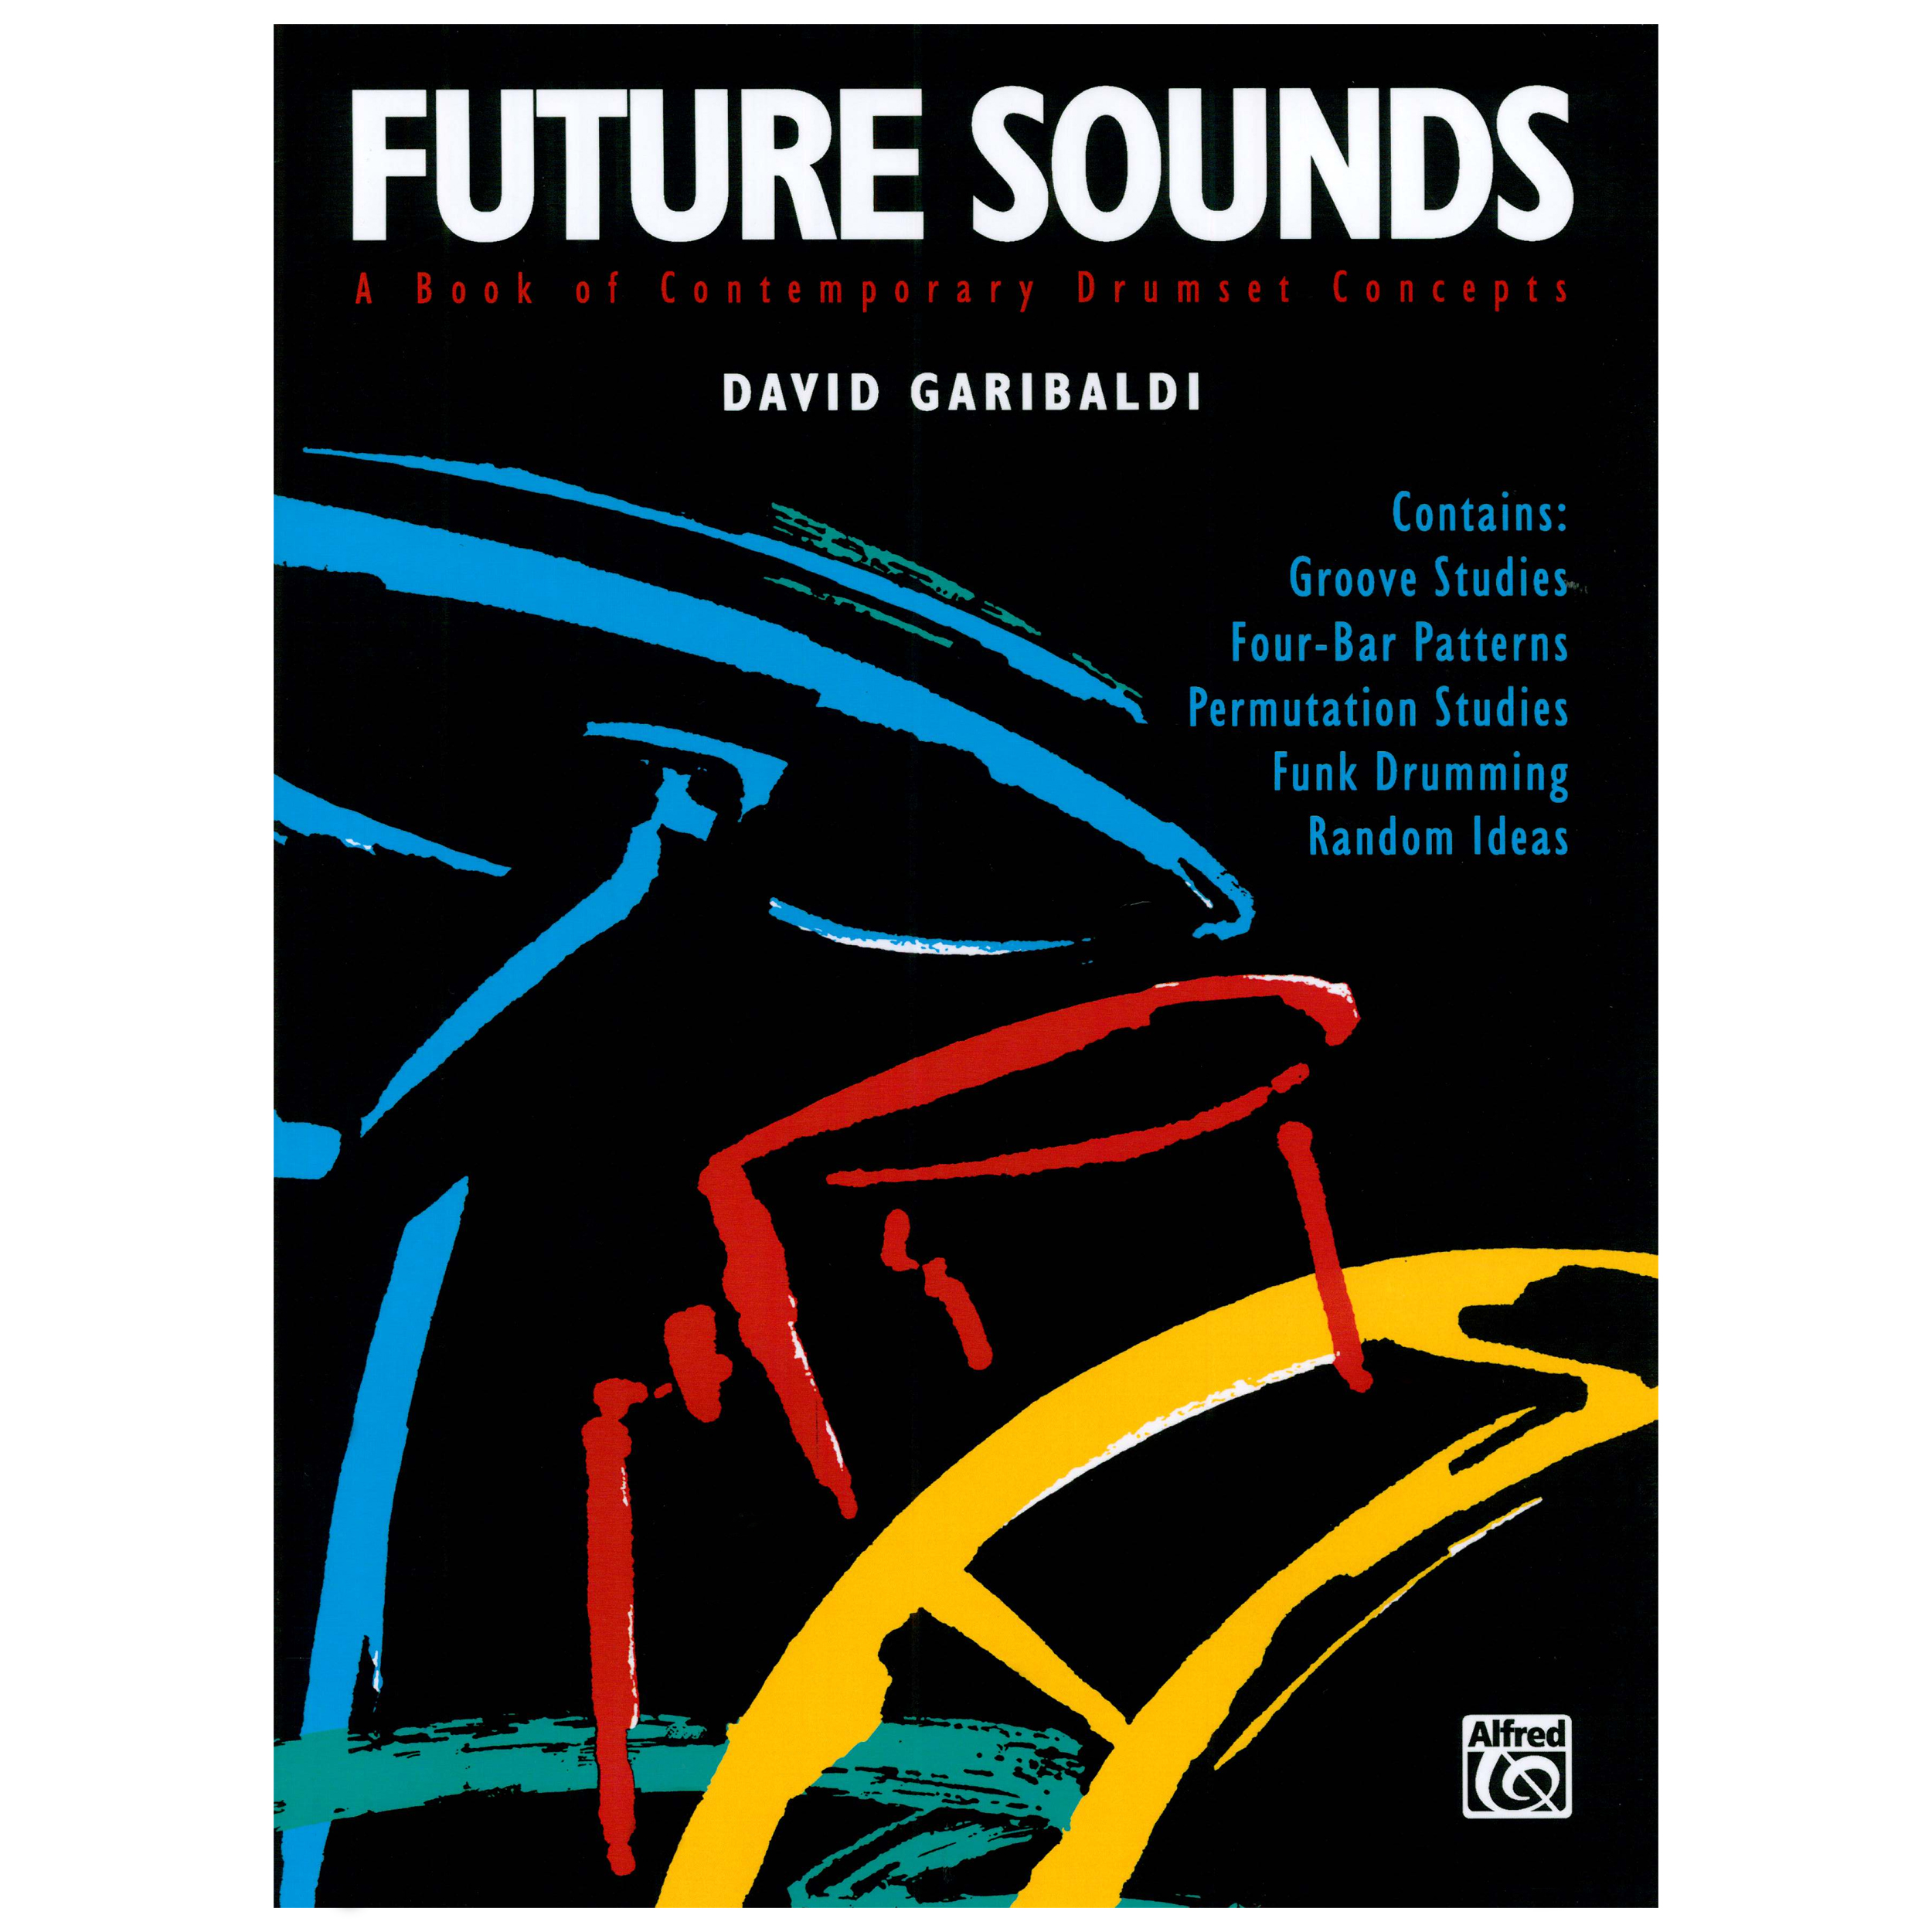 Future Sounds by David Garibaldi